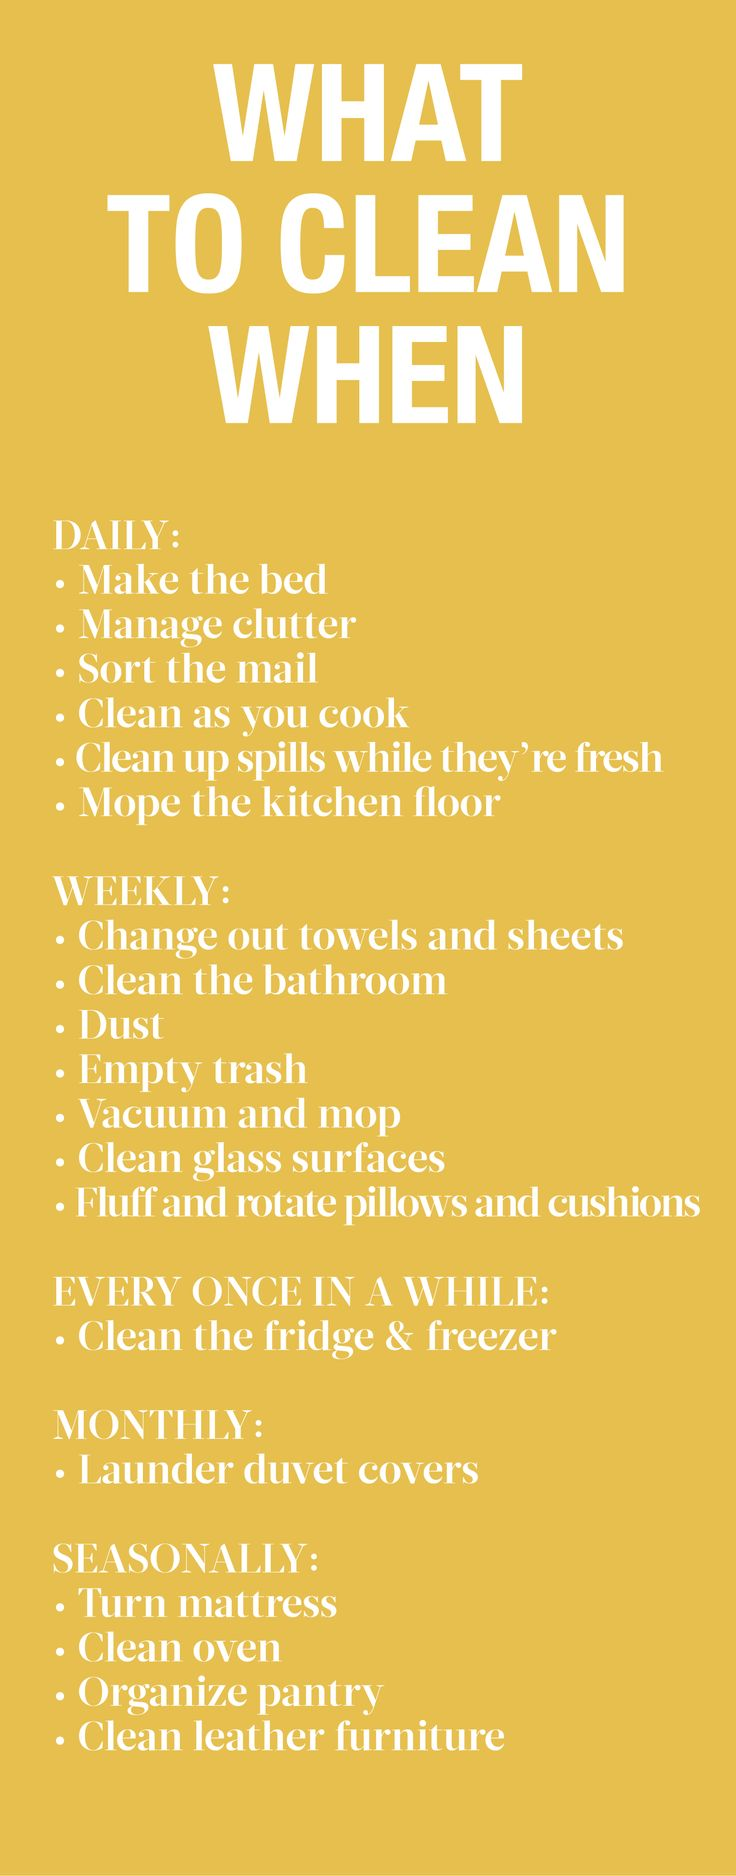 The Golden Rules of Cleaning: What You Should Be Cleaning When | Martha Stewart Living - The easiest habits to keep are the ones that are automatic, which is why we're big fans of the cleaning checklist. Never waste time contemplating where to start or be caught off guard by a task that should have been done months ago. Our printable checklists will tell you what you should be doing every day, week, month, season -- or every once in a while -- to keep your home shipshape year round.